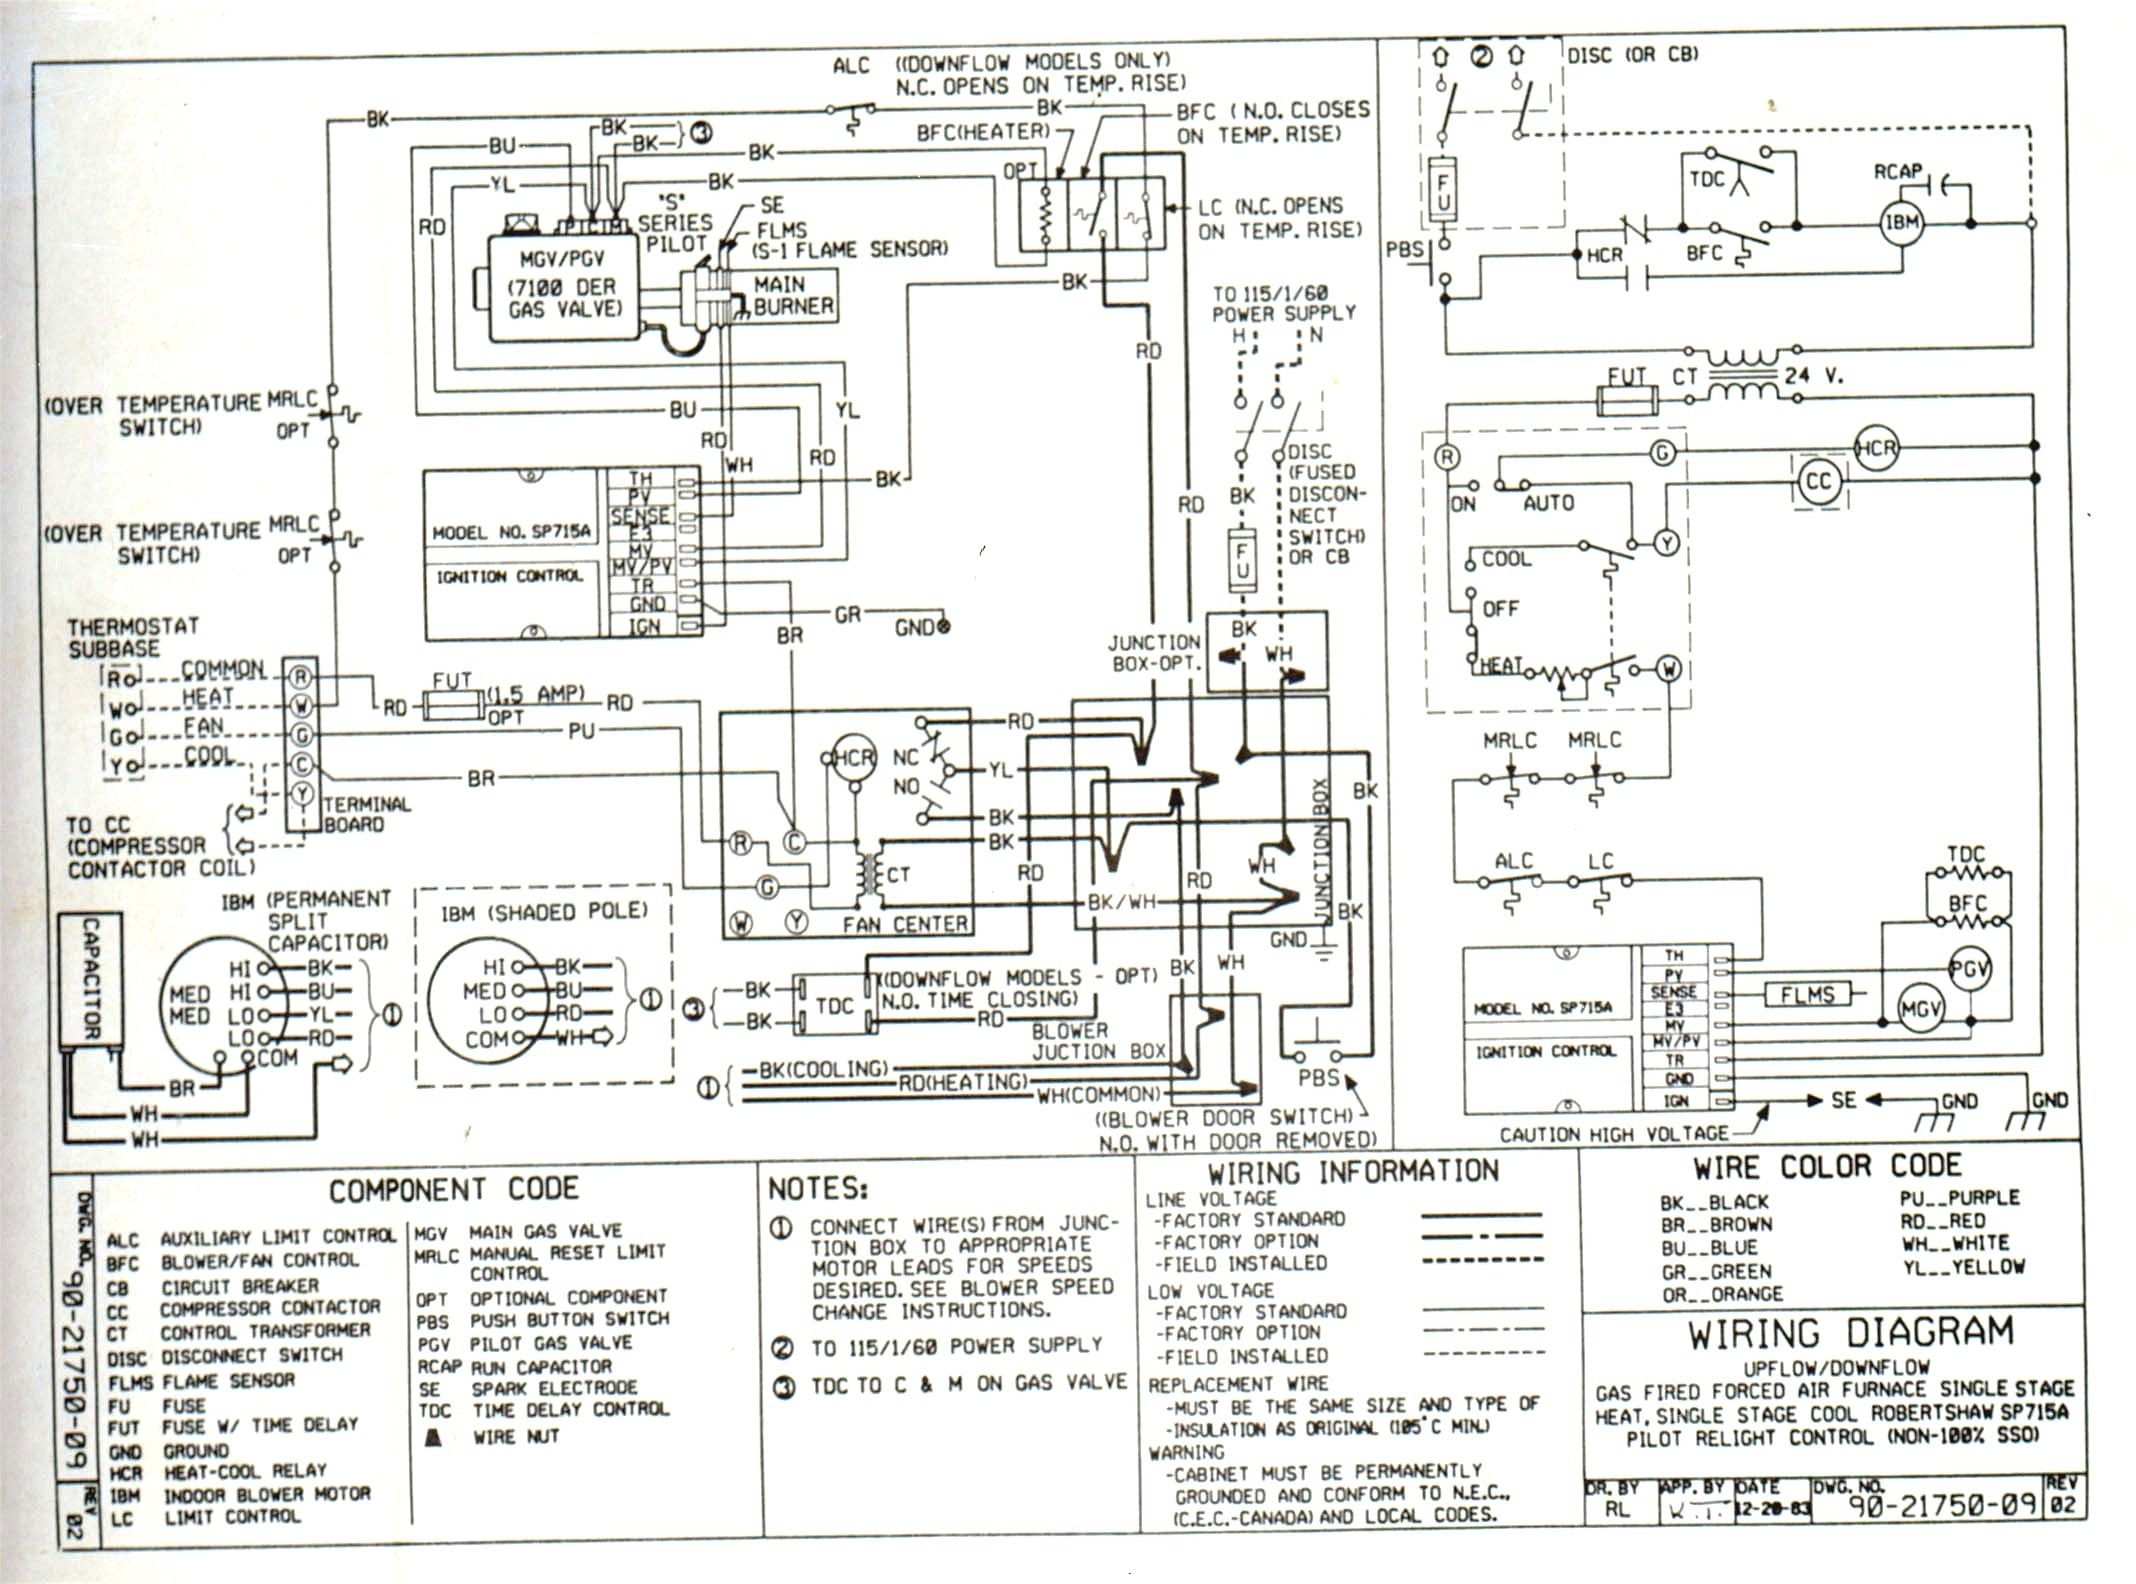 [DIAGRAM_38YU]  Subaru Thermostat Wiring Diagram - 5 4l Engine Diagram Free Download for Wiring  Diagram Schematics | Free Download S Series Wiring Diagram |  | Wiring Diagram and Schematics